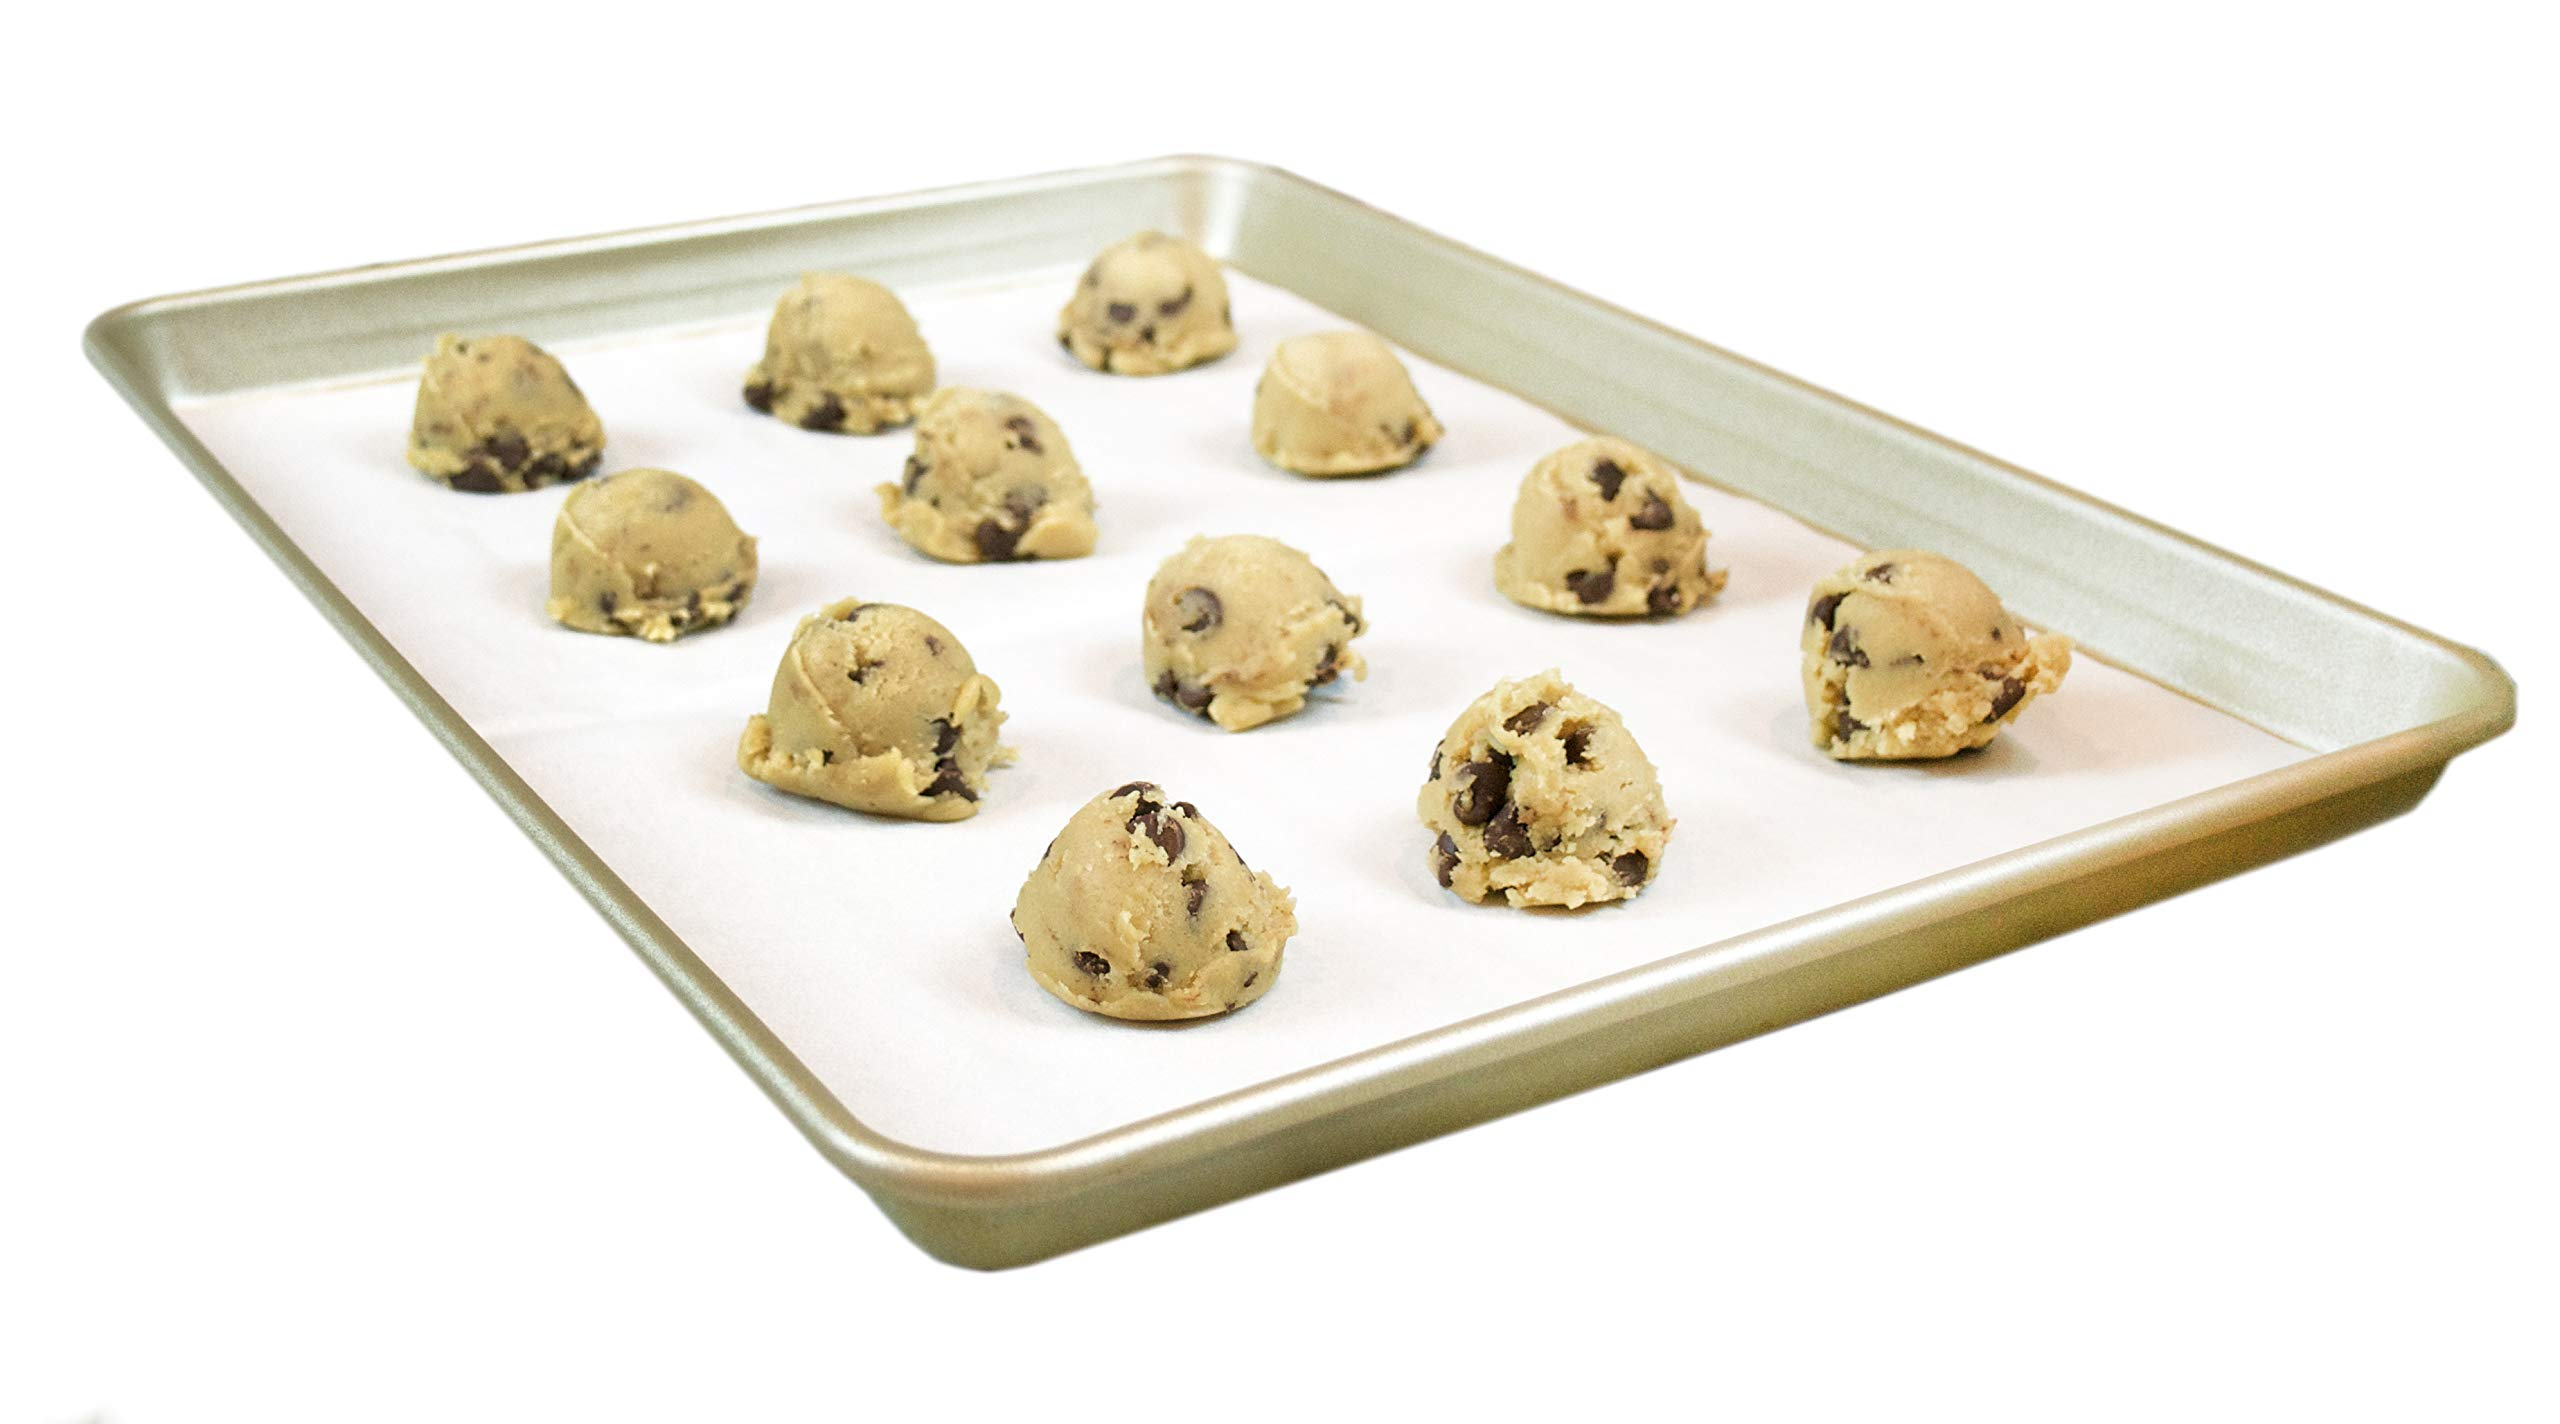 The Smart Baker Half Sheet 13 x 18 inches Perfect Parchment Paper - Pre-Cut Parchment Paper Baking Sheets by The Smart Baker